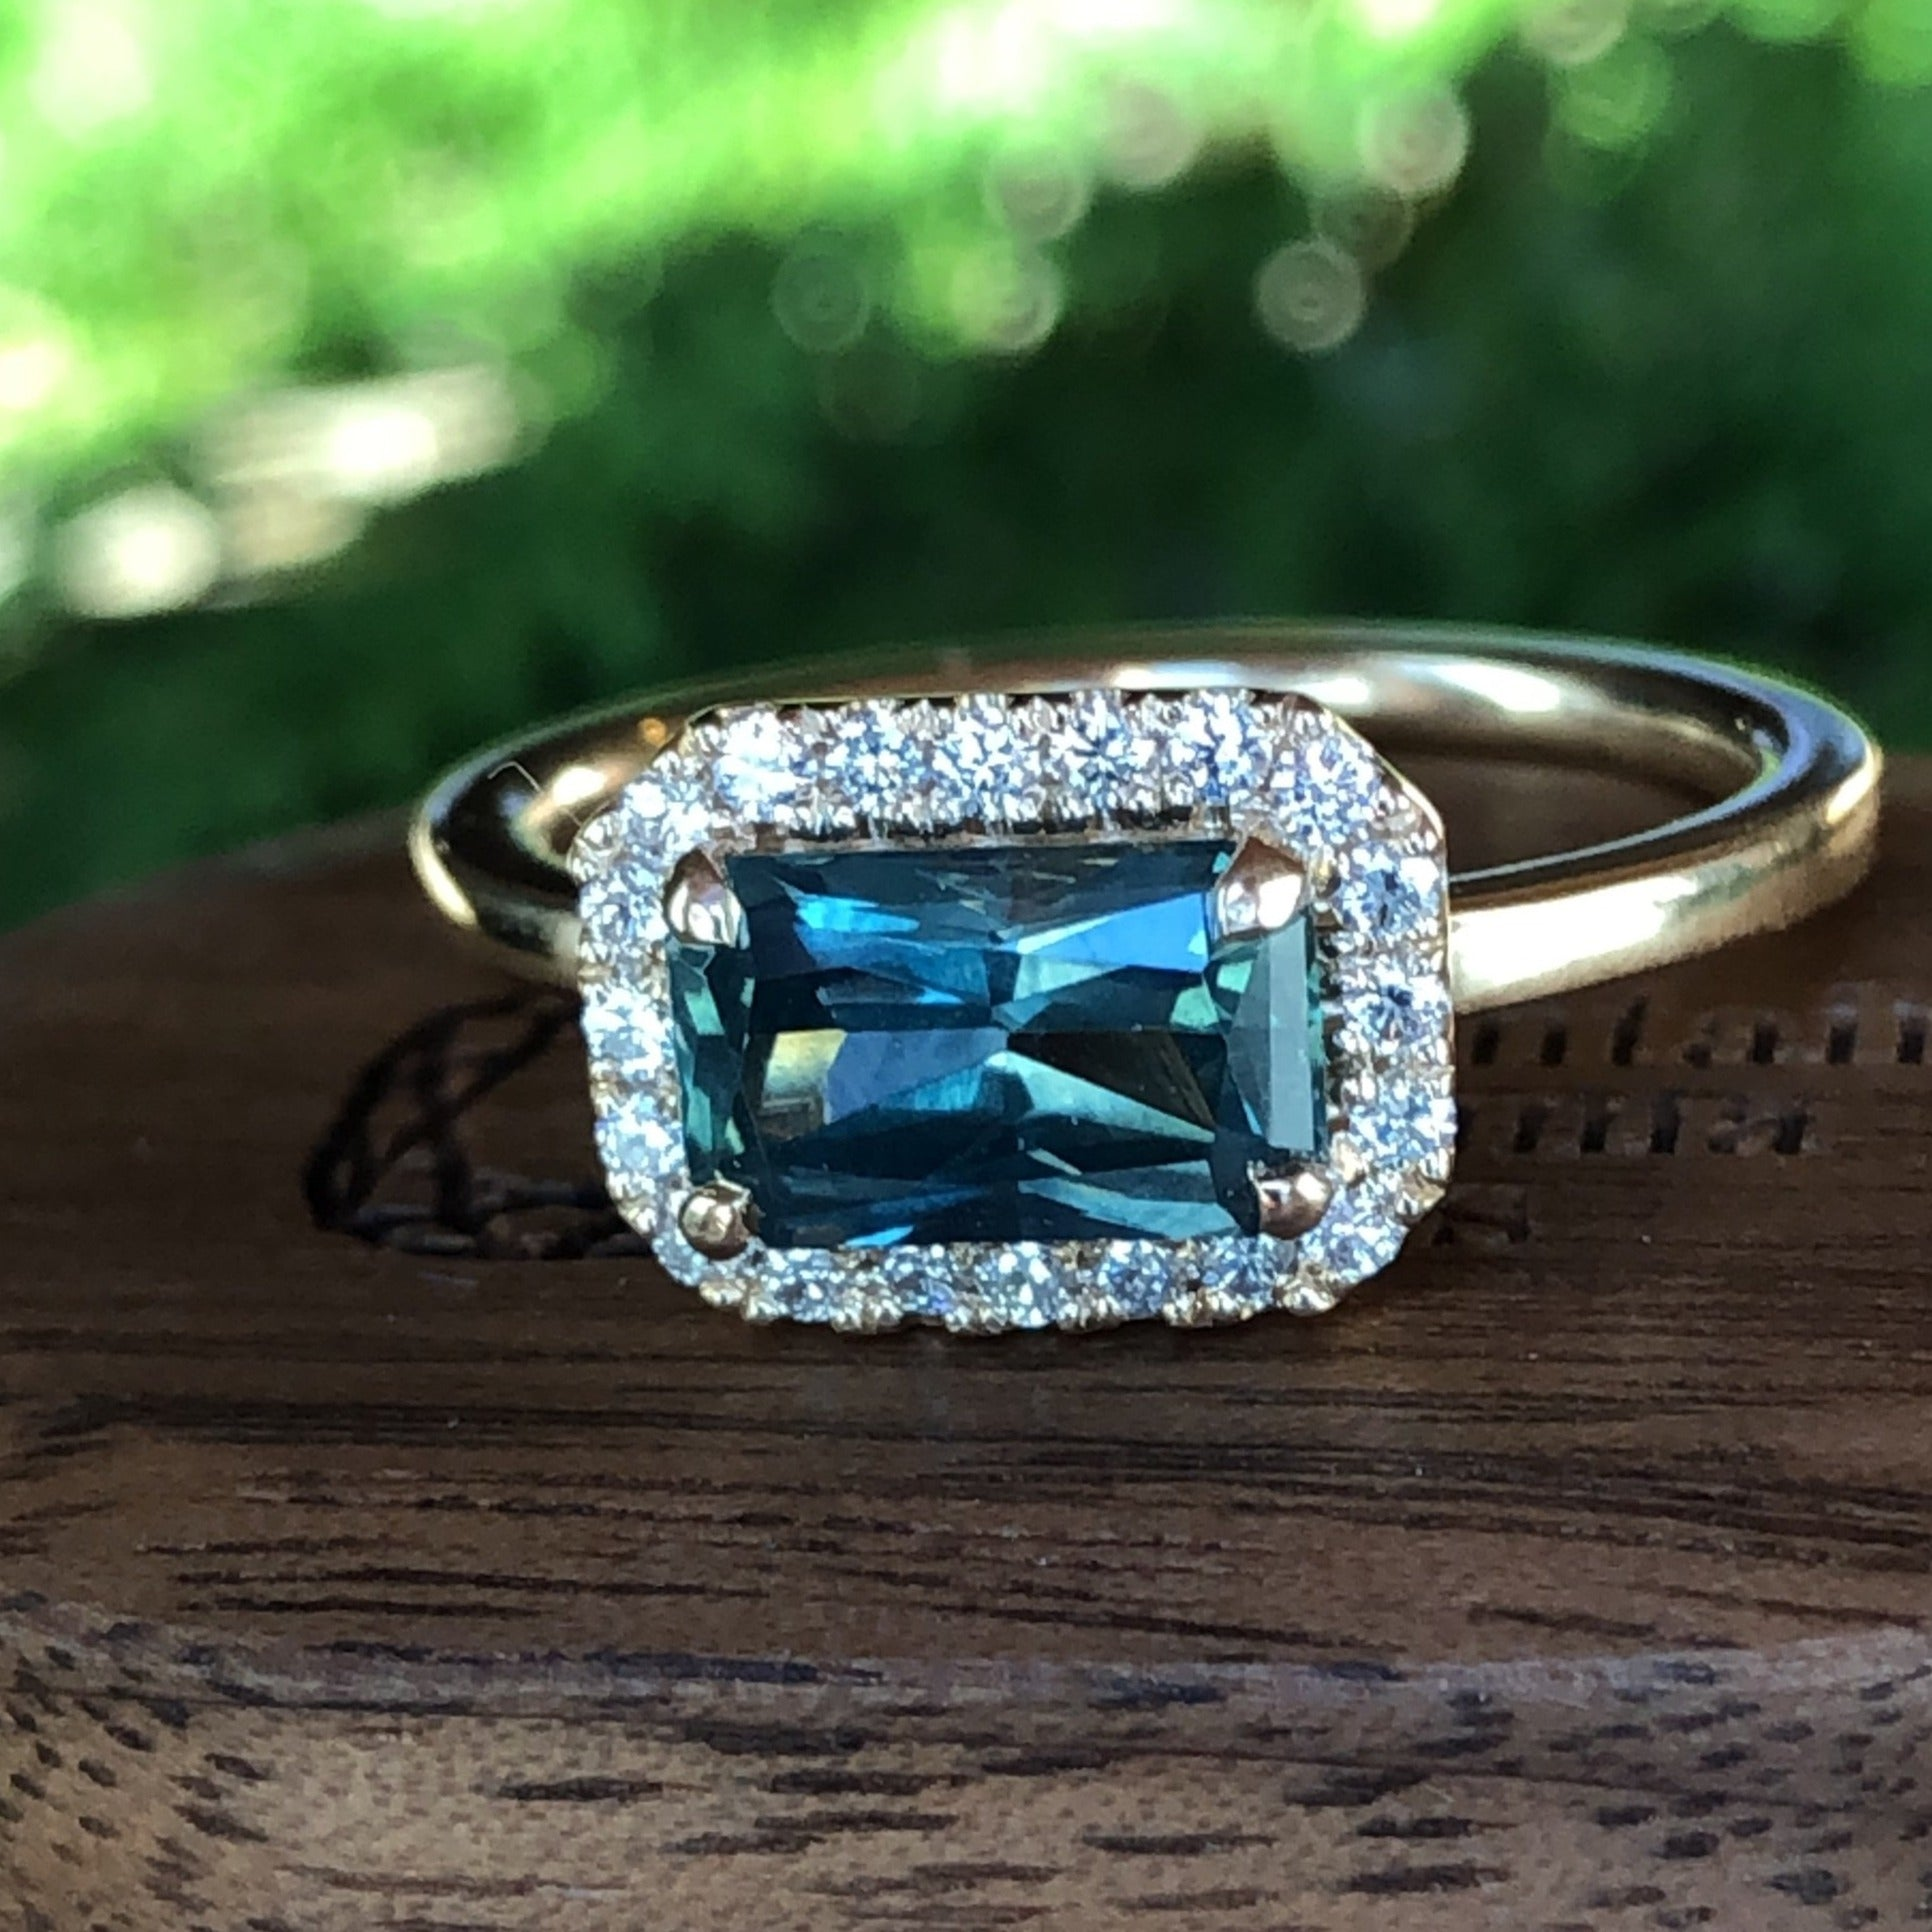 Montana Sapphire and Diamond Halo East/West Teal Radiant cut 1.54 carat 14k Yellow Gold Engagement Ring